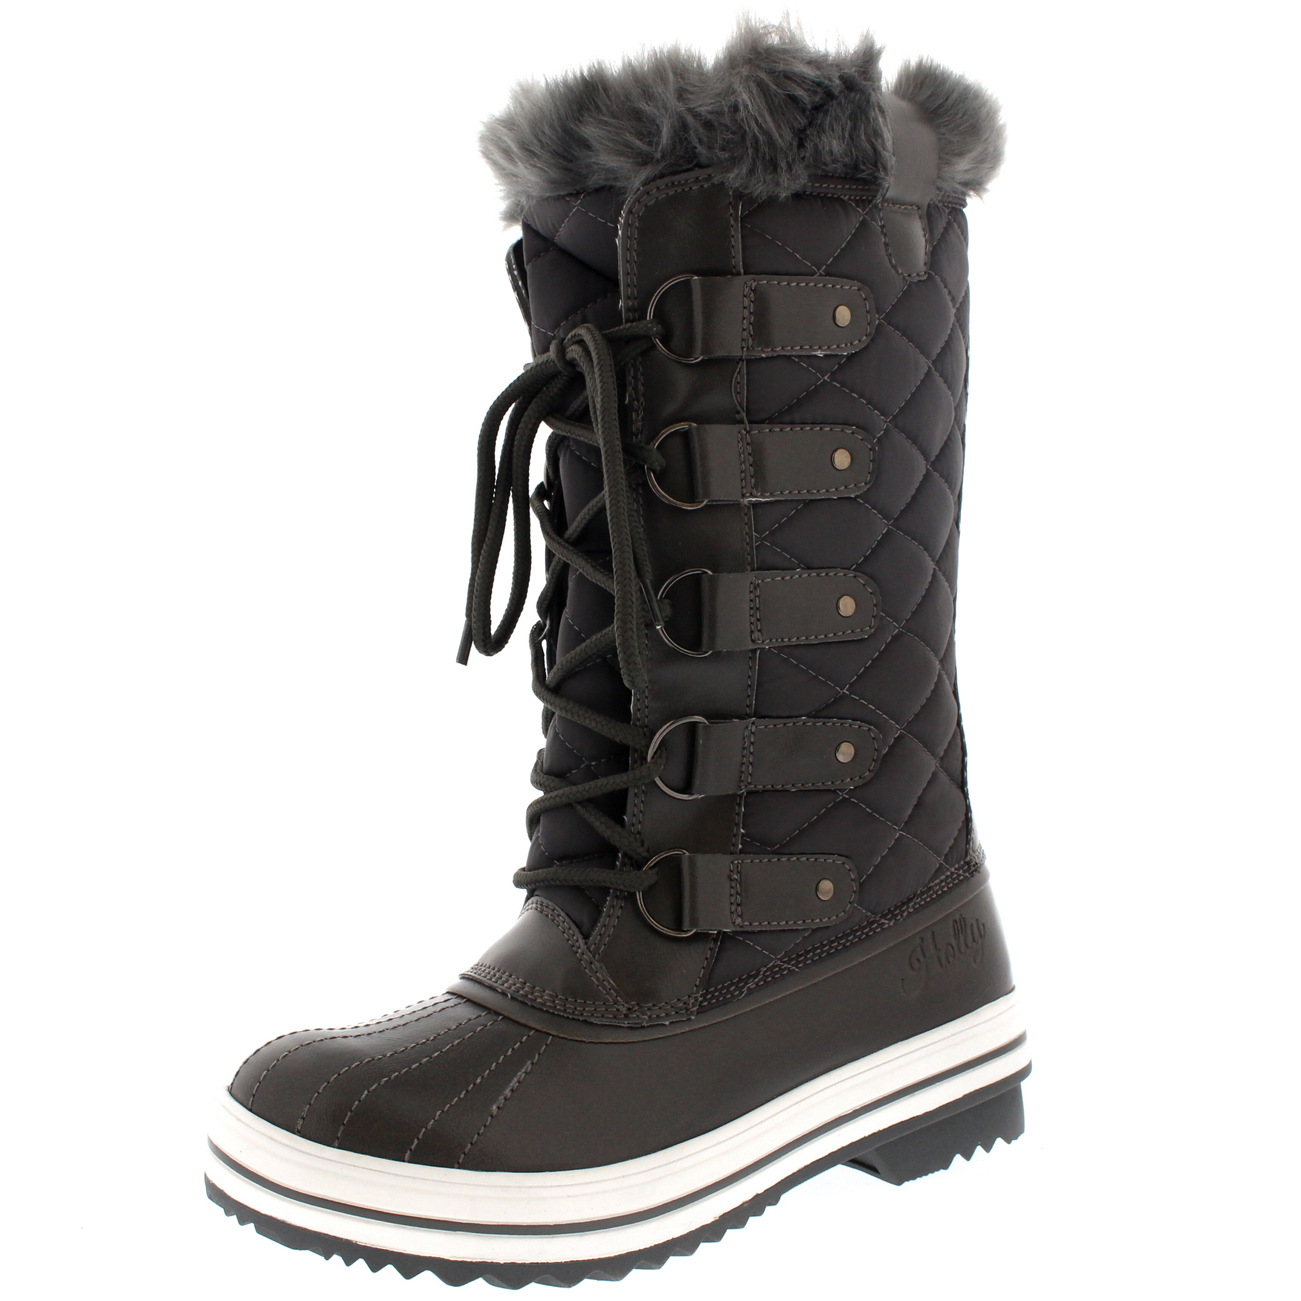 6a2e6ccb20de Womens Snow Boot Nylon Tall Winter Snow Waterproof Fur Lined Warm Rain Boot  3-9